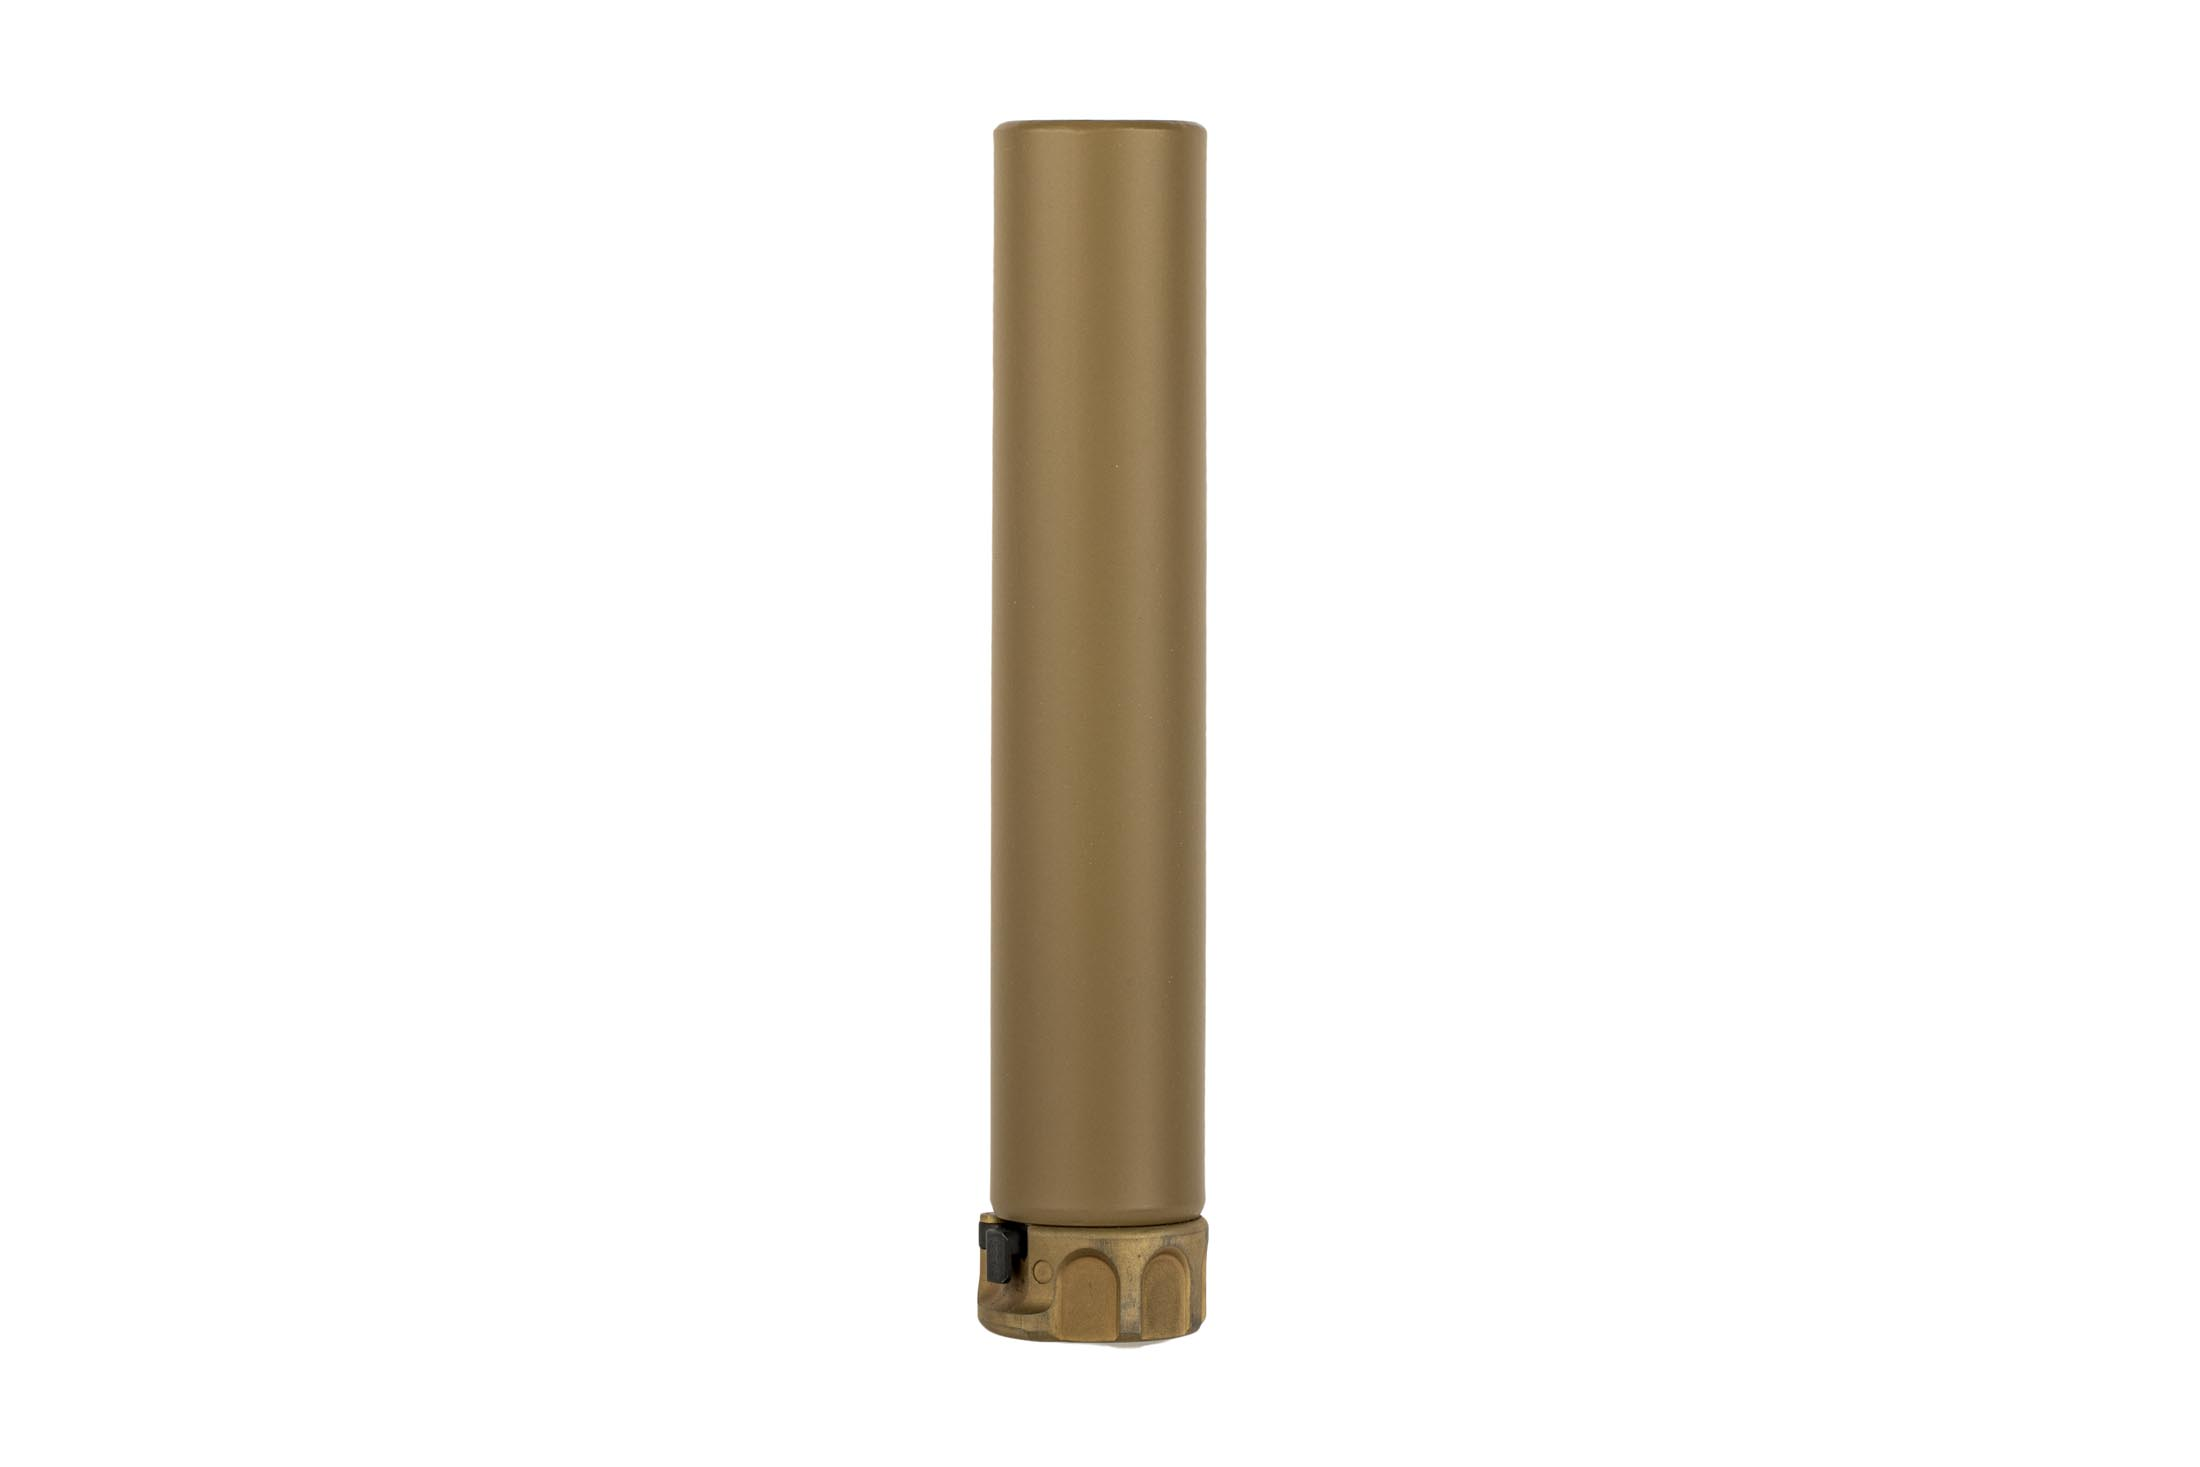 The SureFire SOCOM 7.62 Trainer Muzzle Device in FDE features the quick attach design for SF muzzle brakes